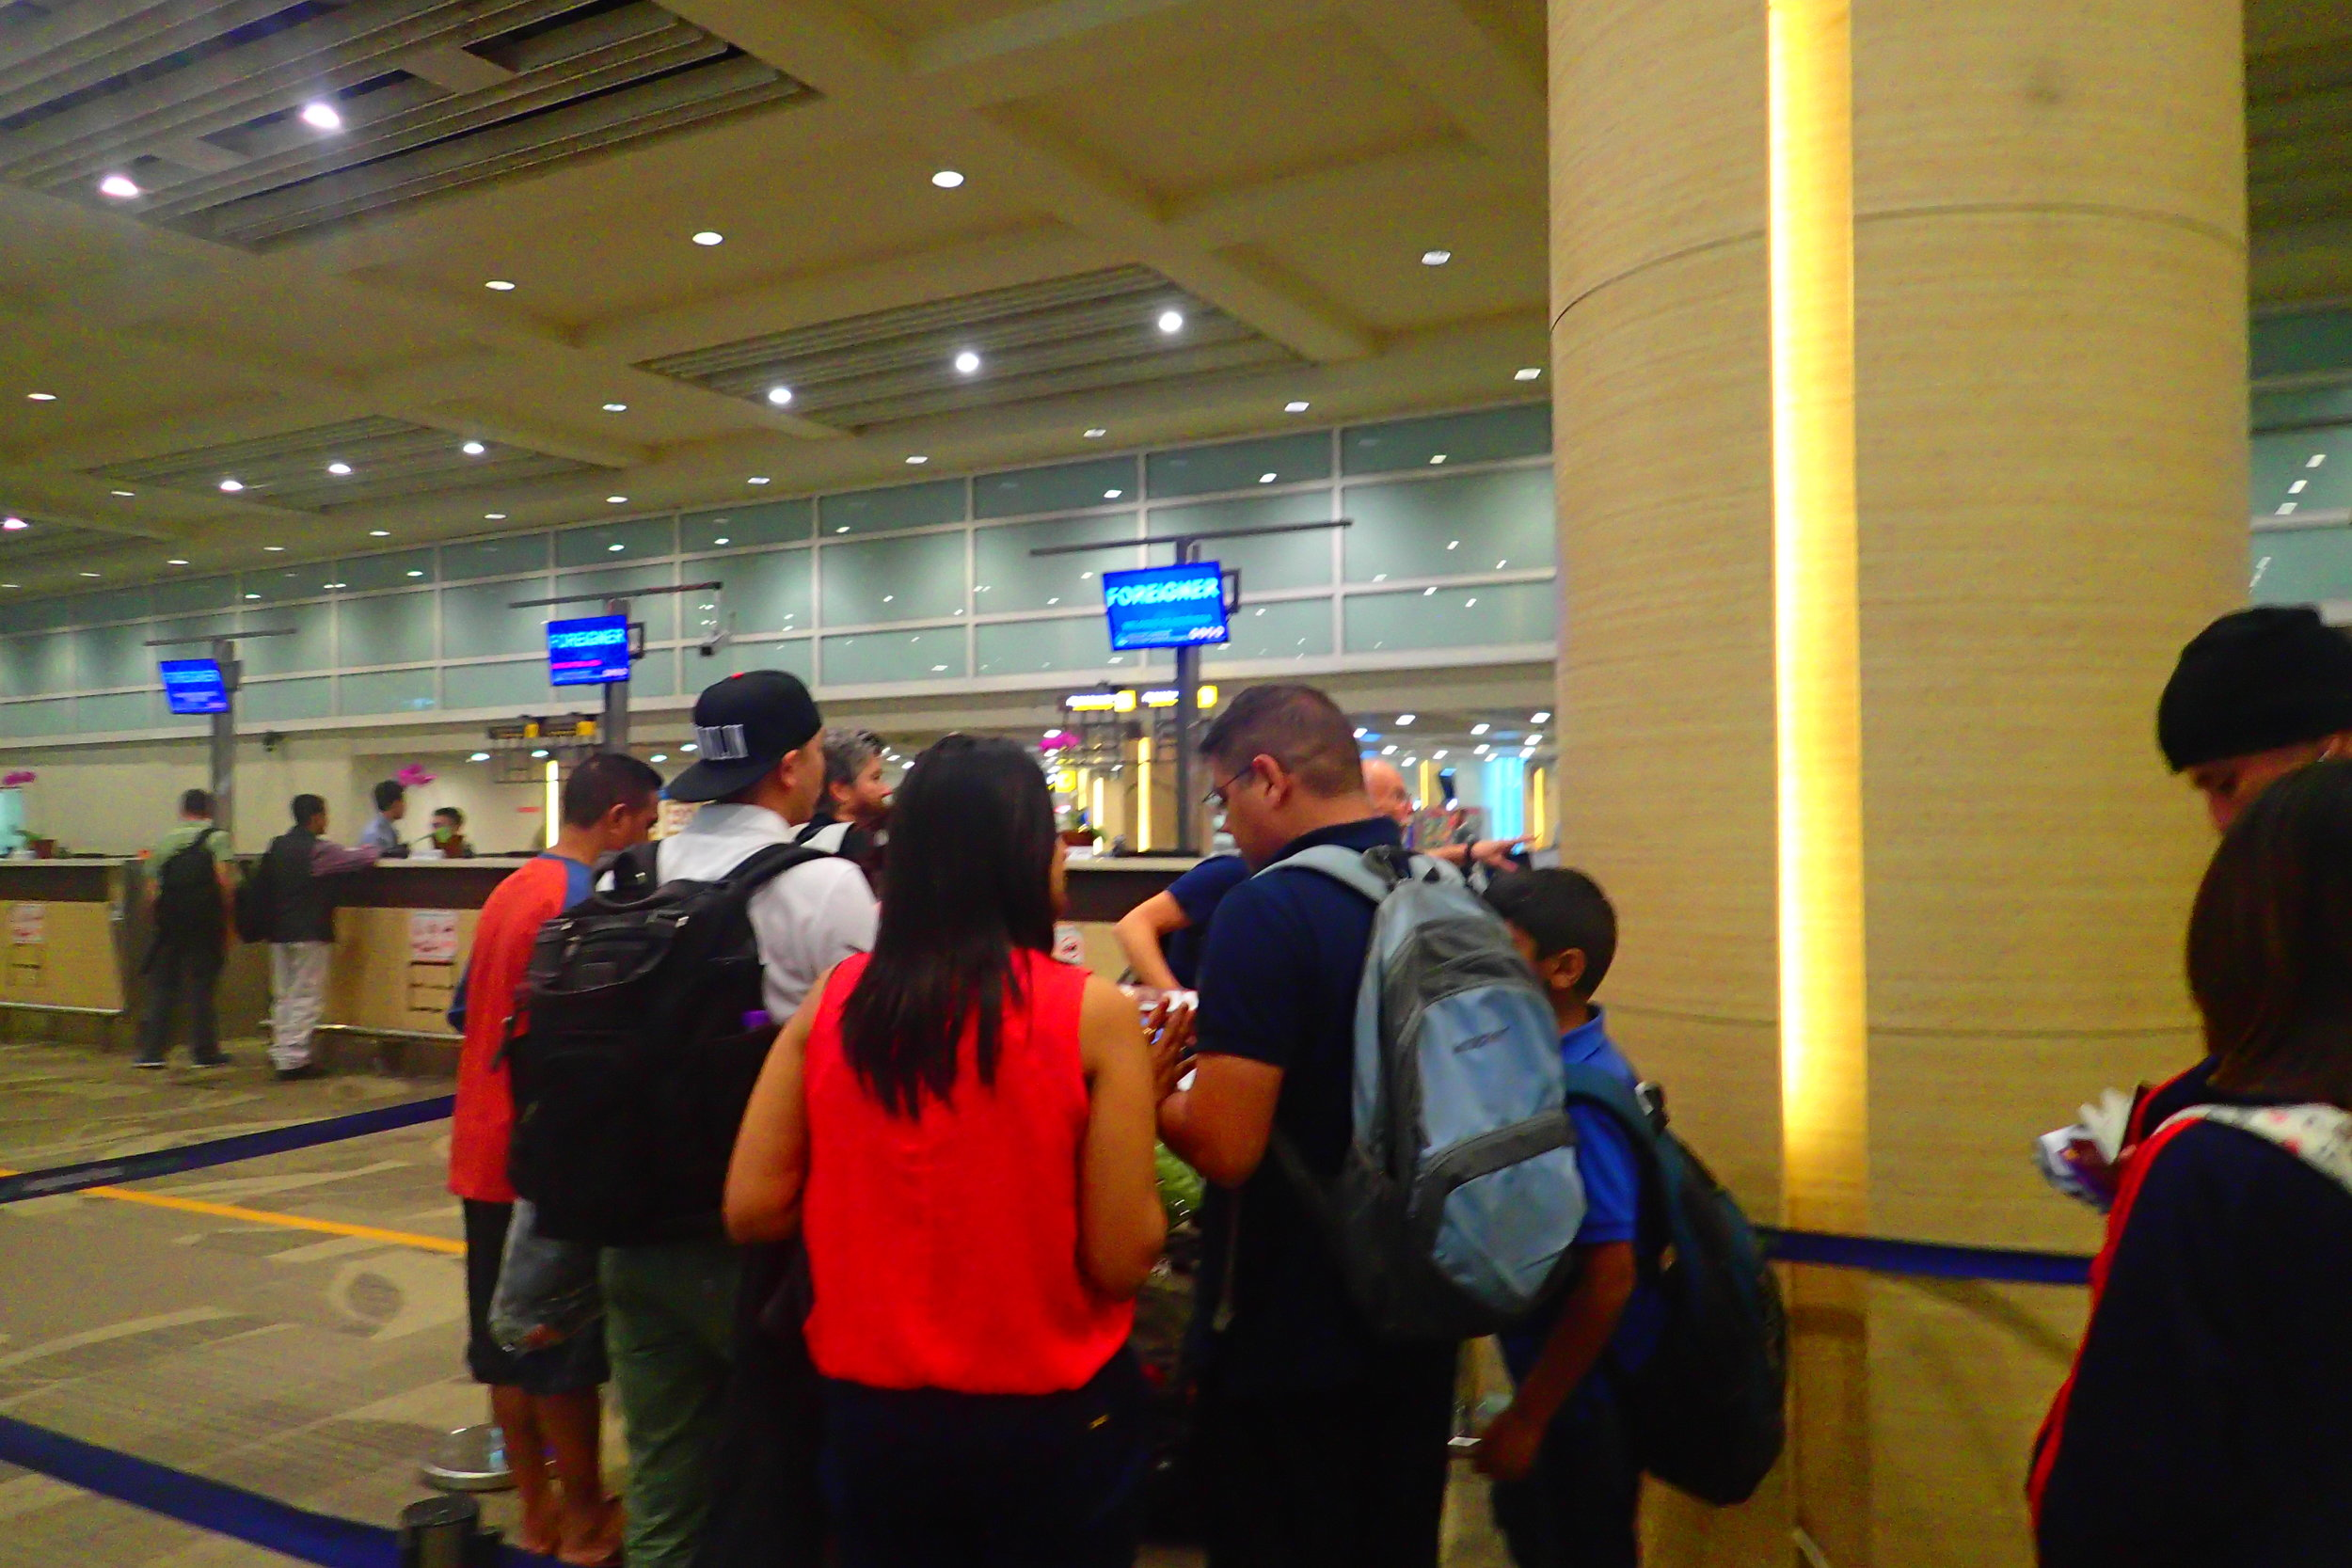 This is a shot at customs entering Bali. Losing your passport while abroad would be a much bigger problem than your ID while domestic.